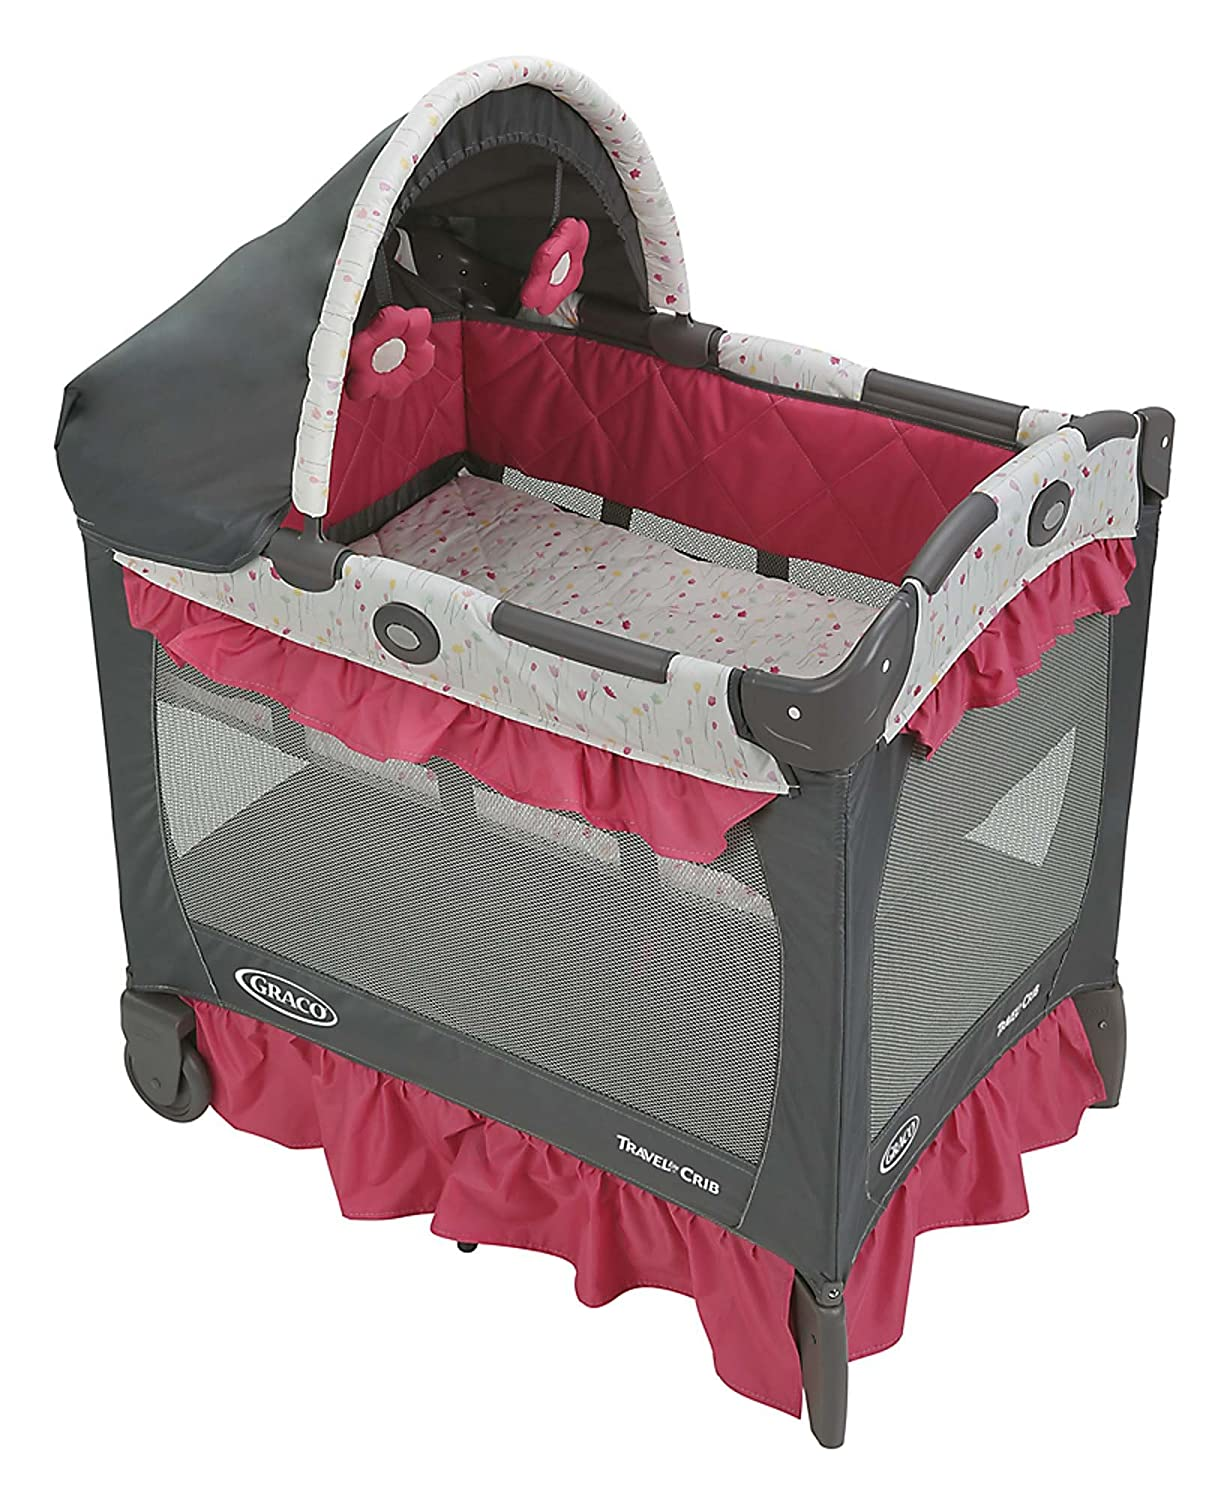 Graco Travel Lite Crib with Stages, Manor 1893800